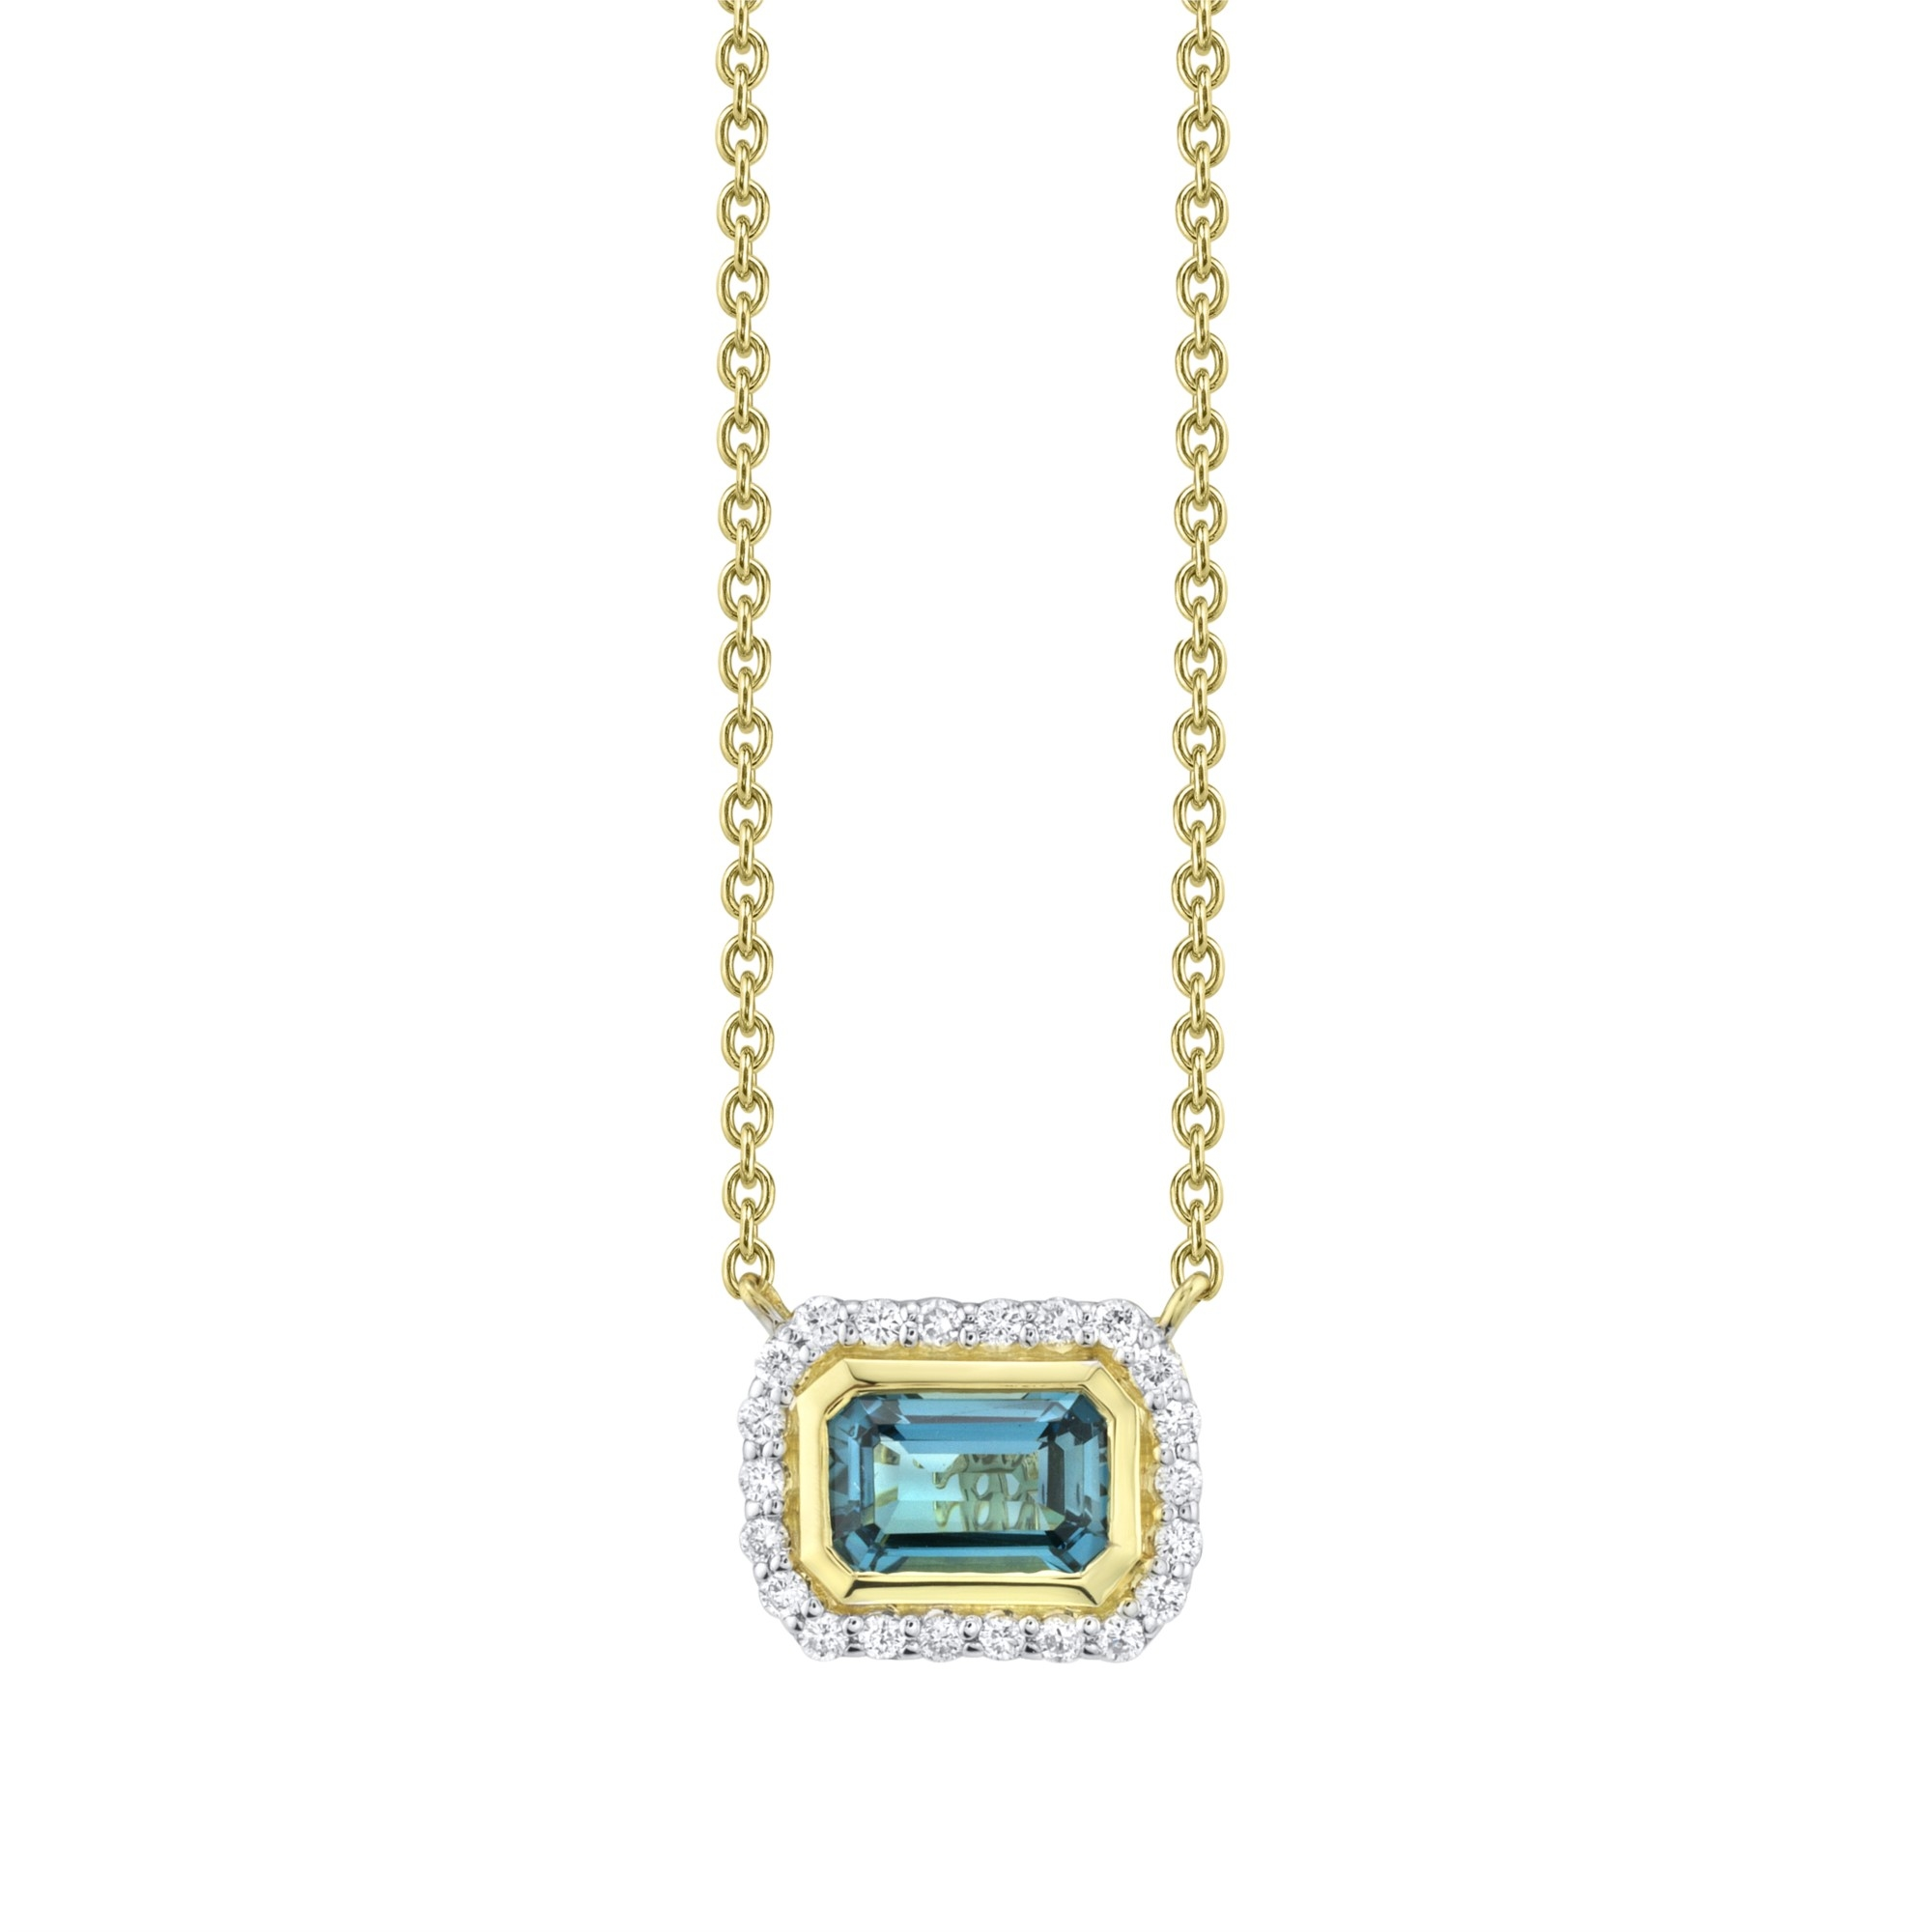 Sloanee Street 18K Yellow Gold .11cts  Diamonds Gold Necklace with Stones P007F-LB-WDCB-Y